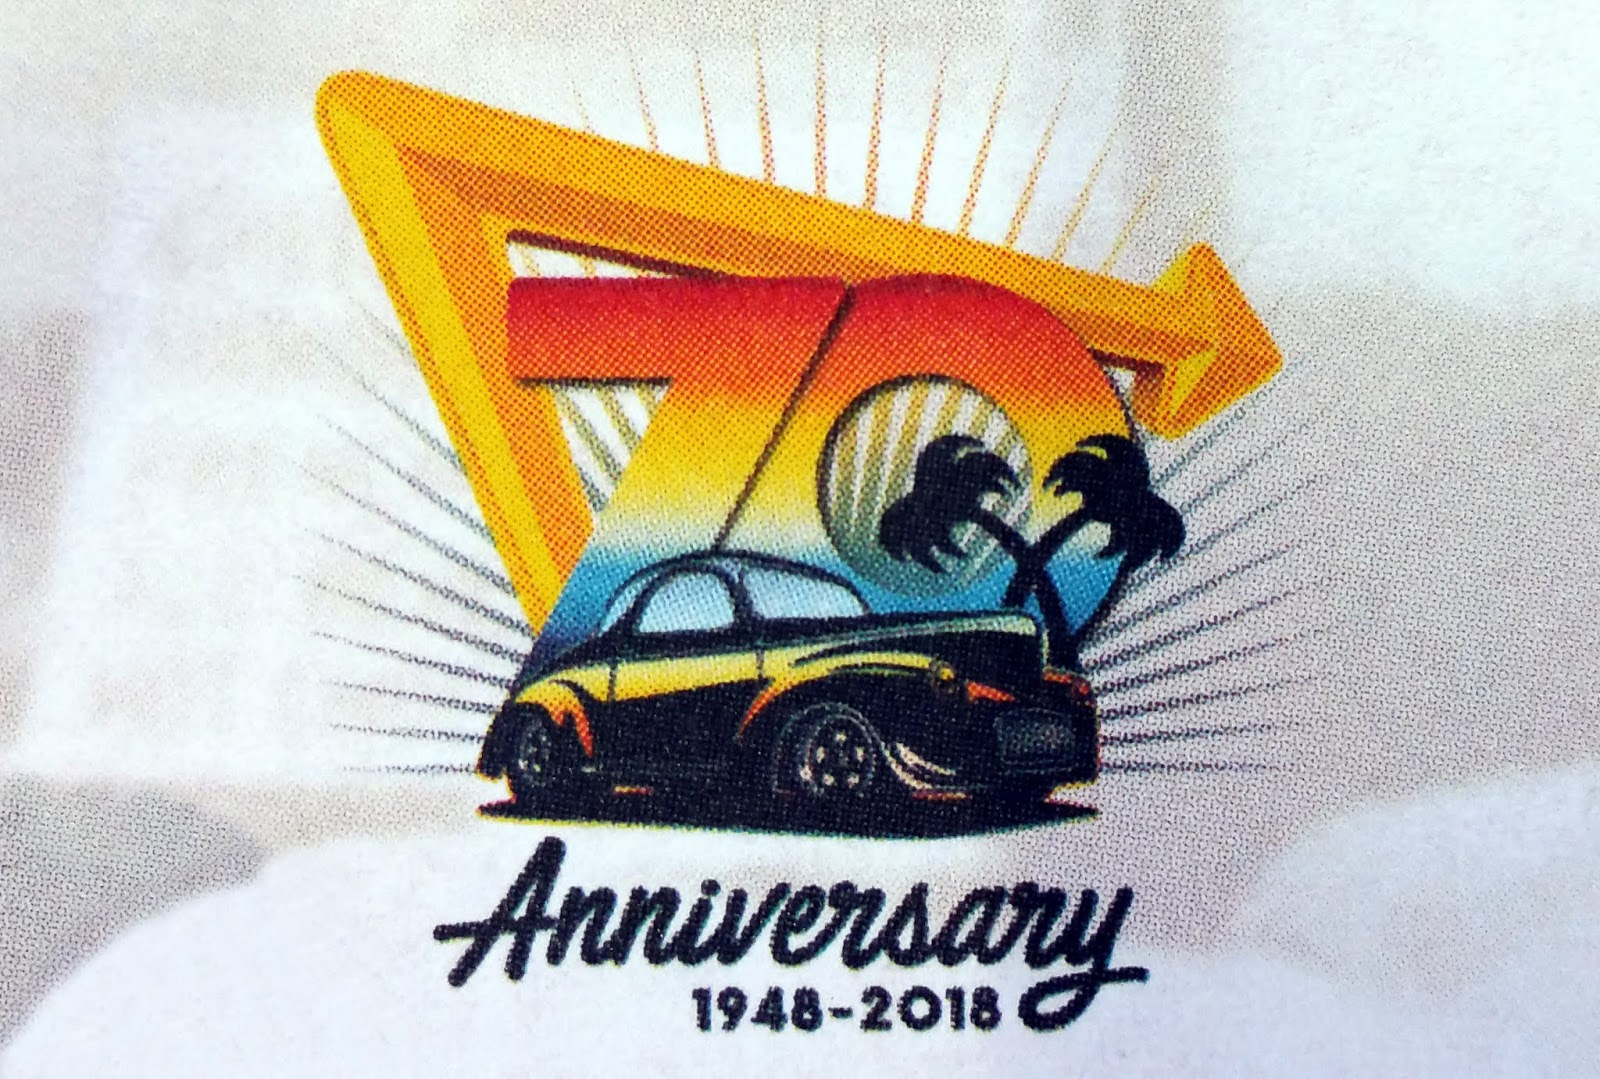 happy 70th anniversary in business to in n out the only burger joint i know that digs cool old hot rods the only family owned and operated one